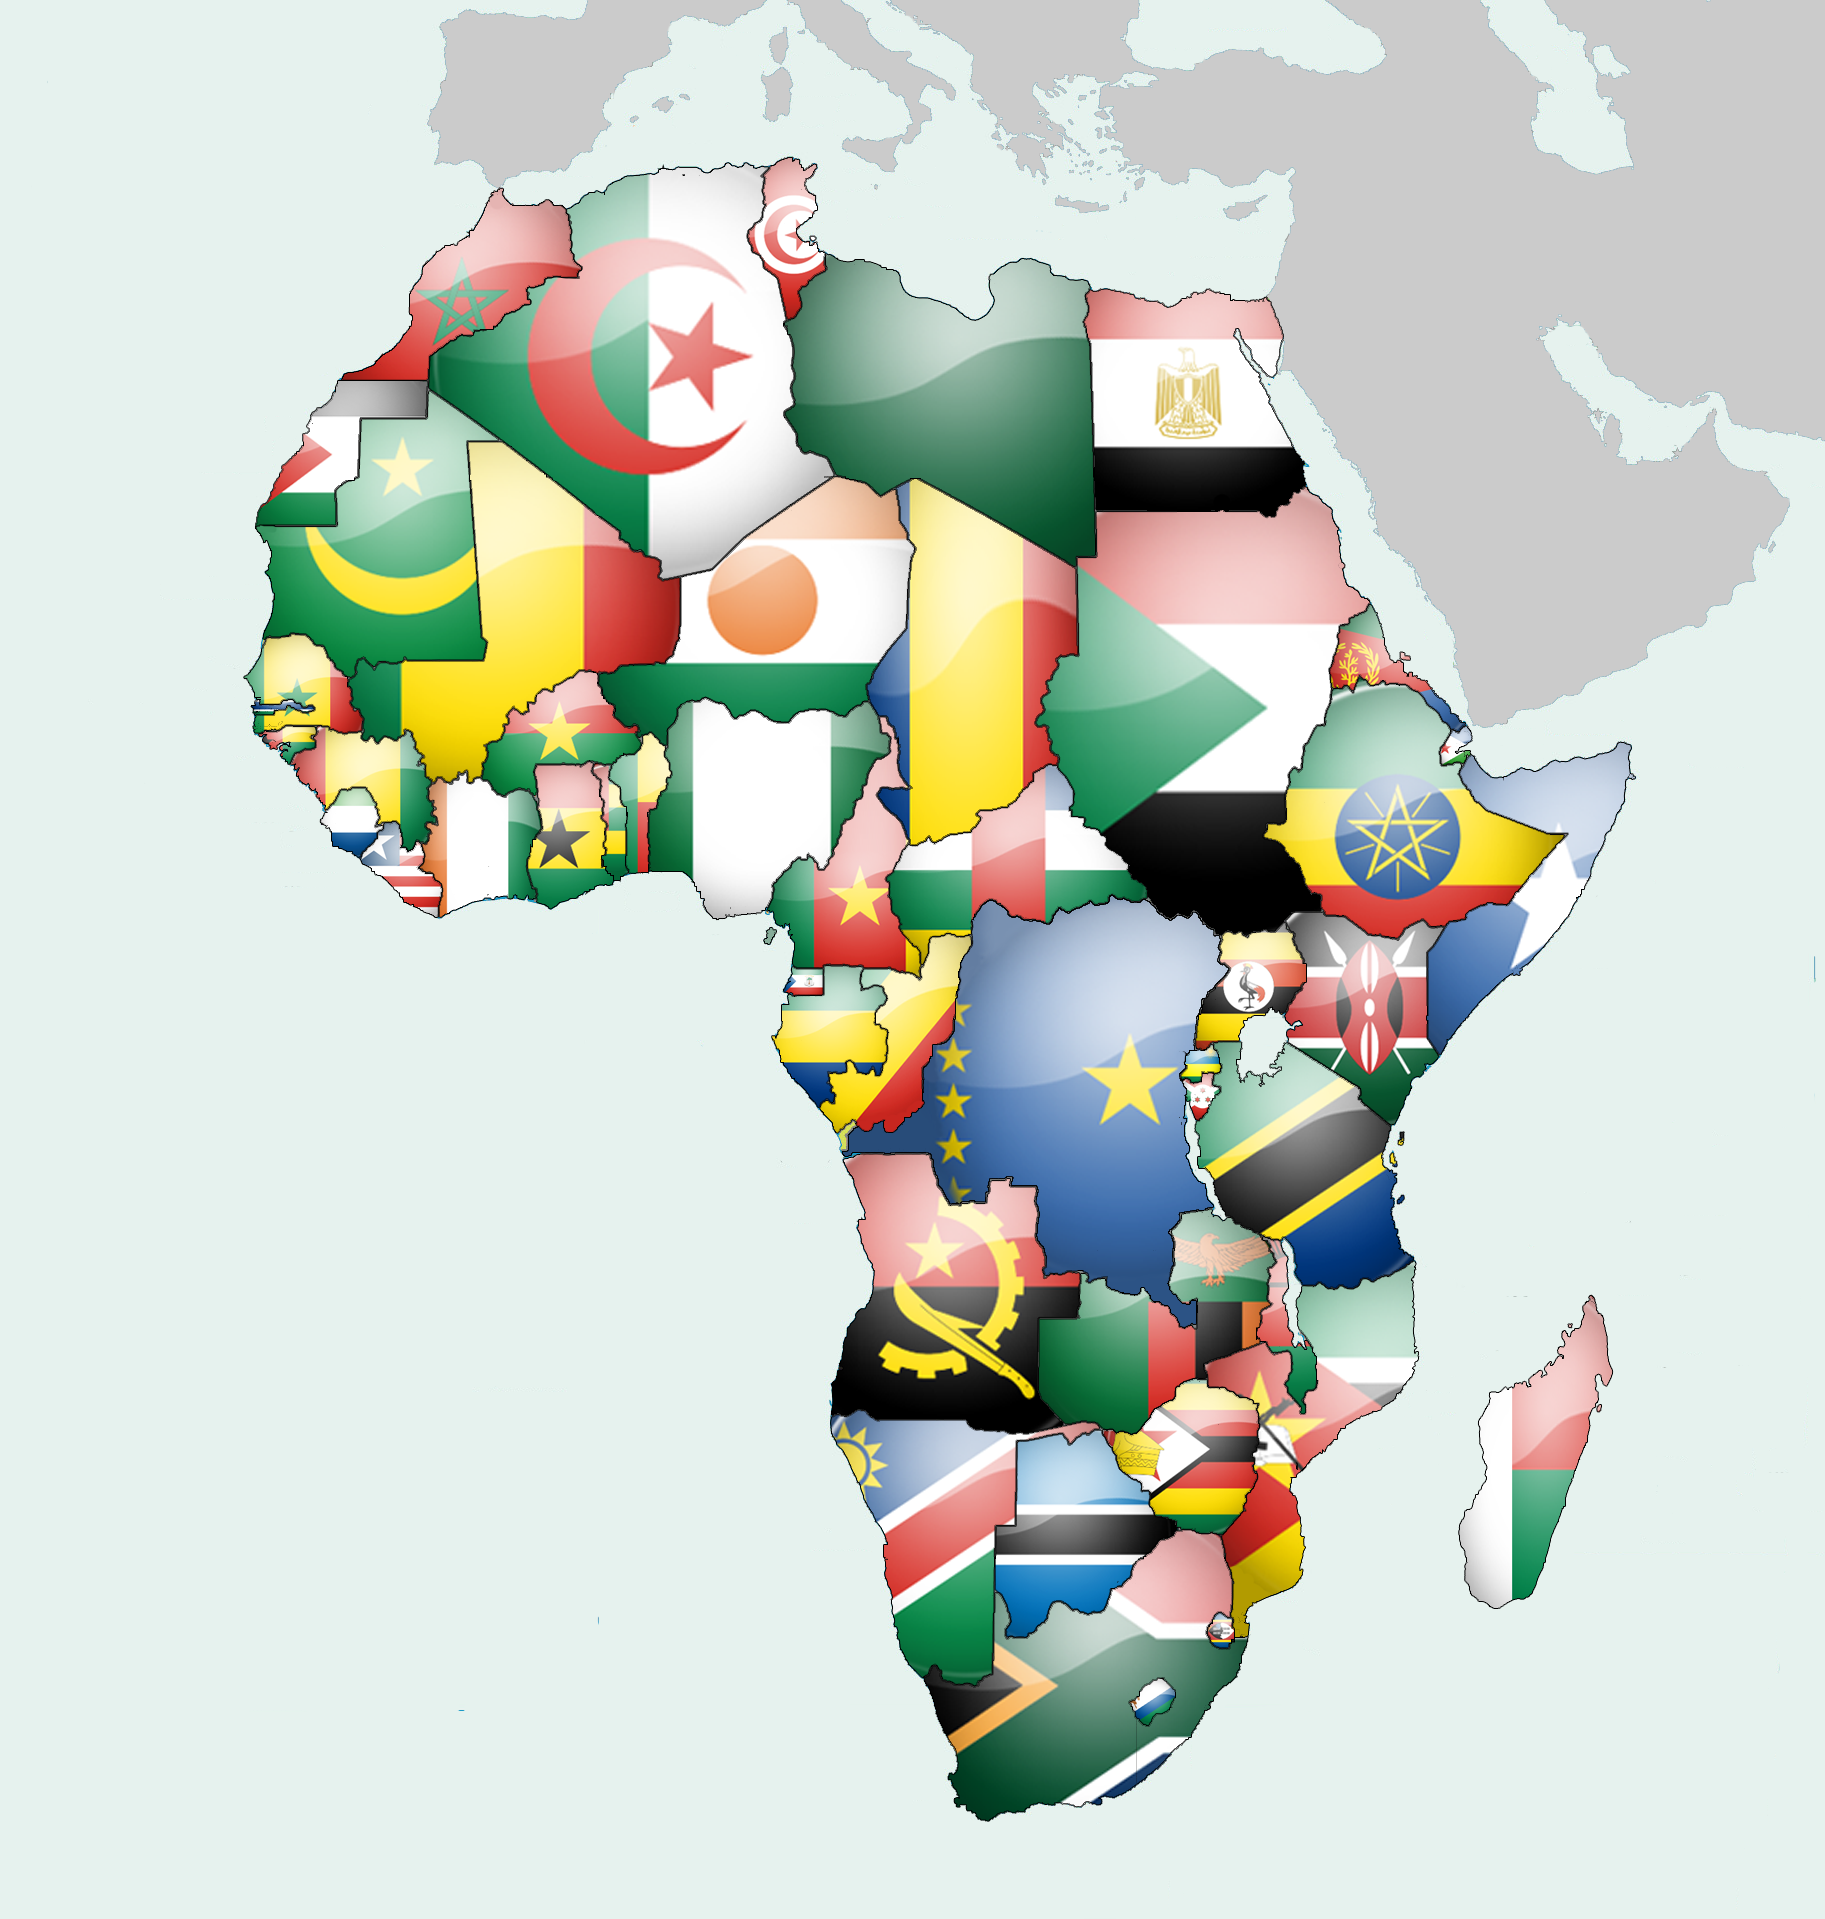 Map Of Africa With Flags.Africa Flag Map Marketing Africa Map Africa Flag African Union